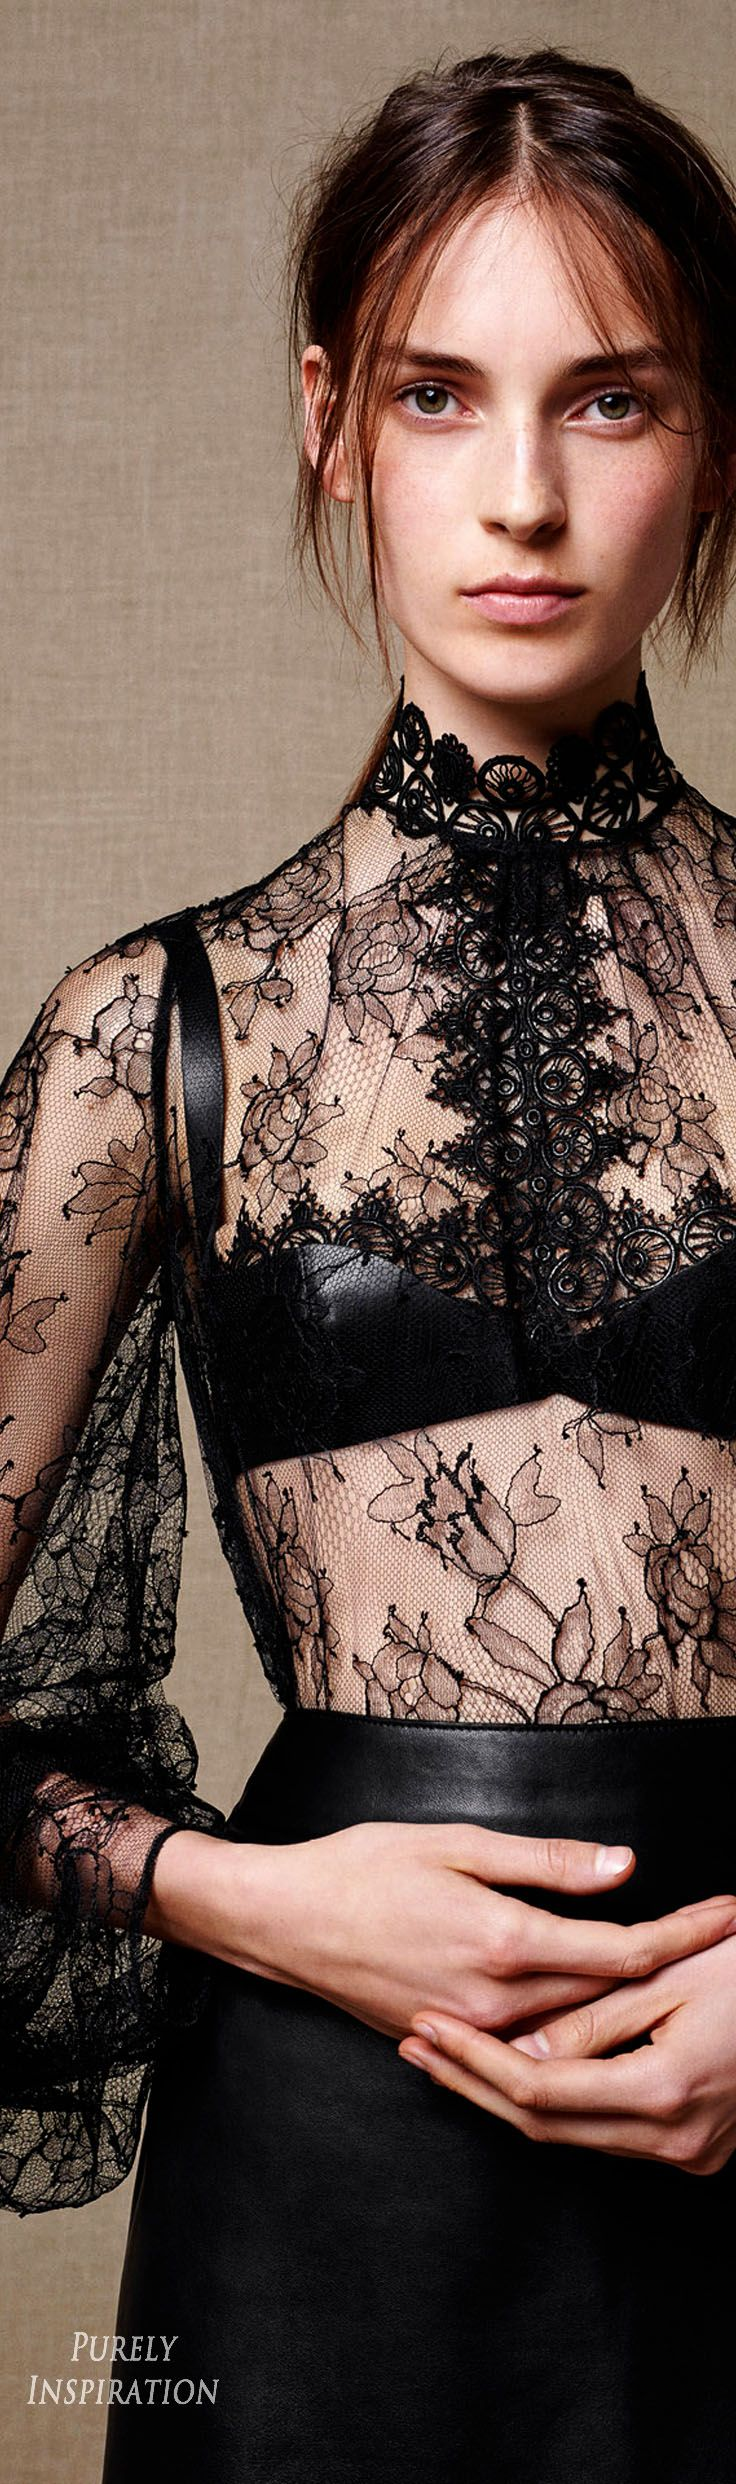 best gothic chic images on pinterest high fashion atelier